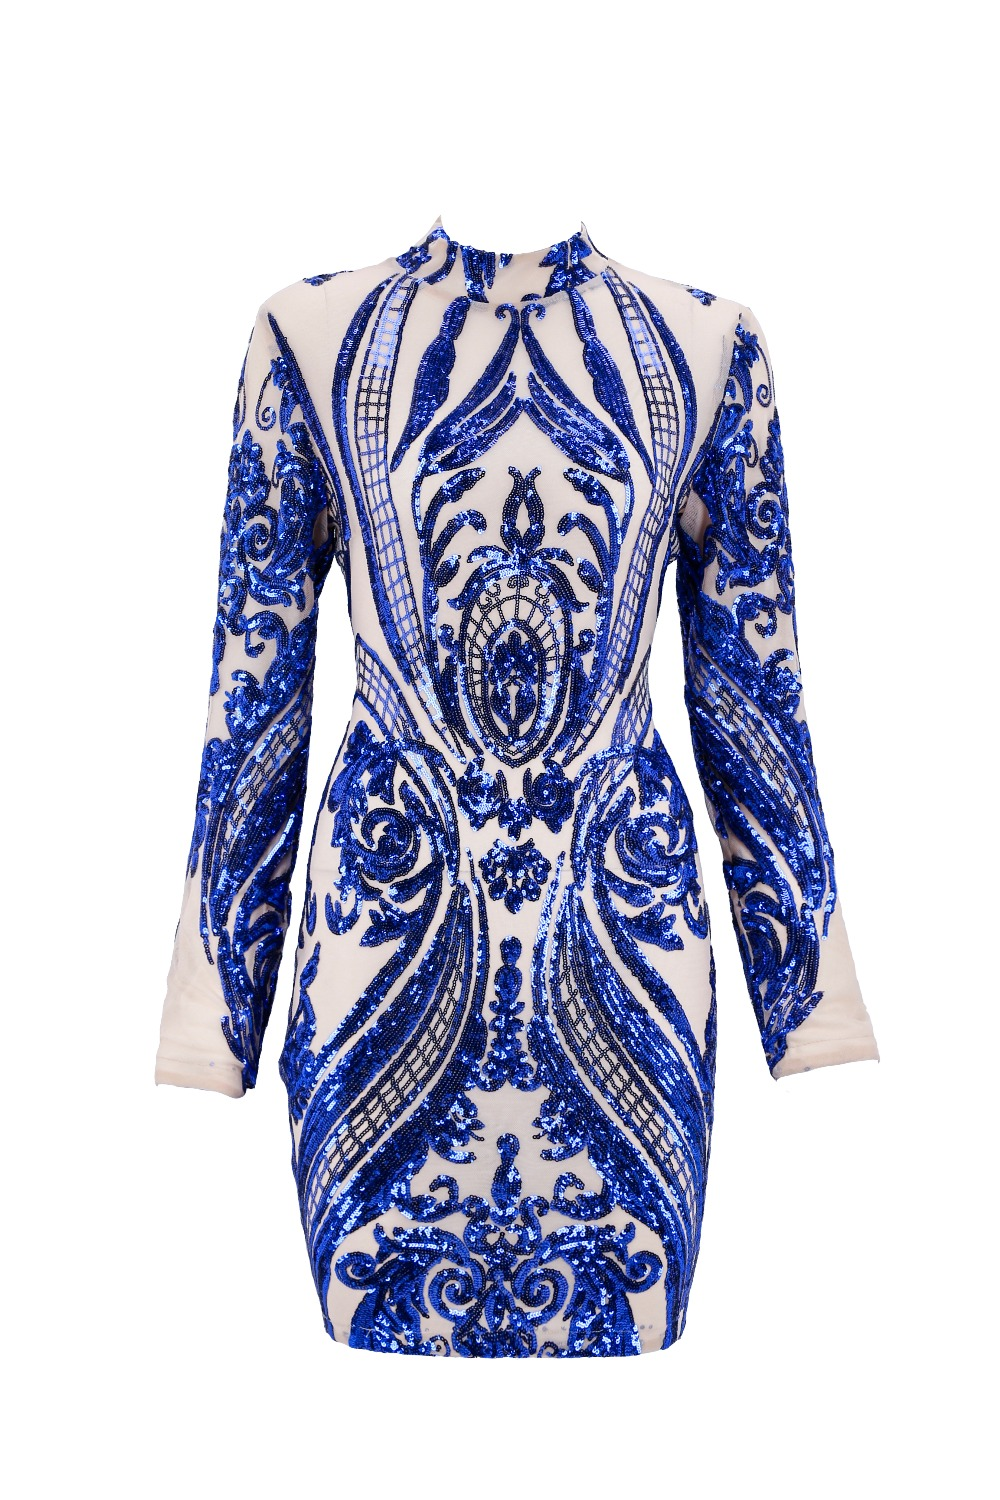 High quality 2017 new winter women s dress wholesale gold blue black sequin  long sleeve dress party dress dropshipping A 79-in Dresses from Women s  Clothing ... a2654390b967